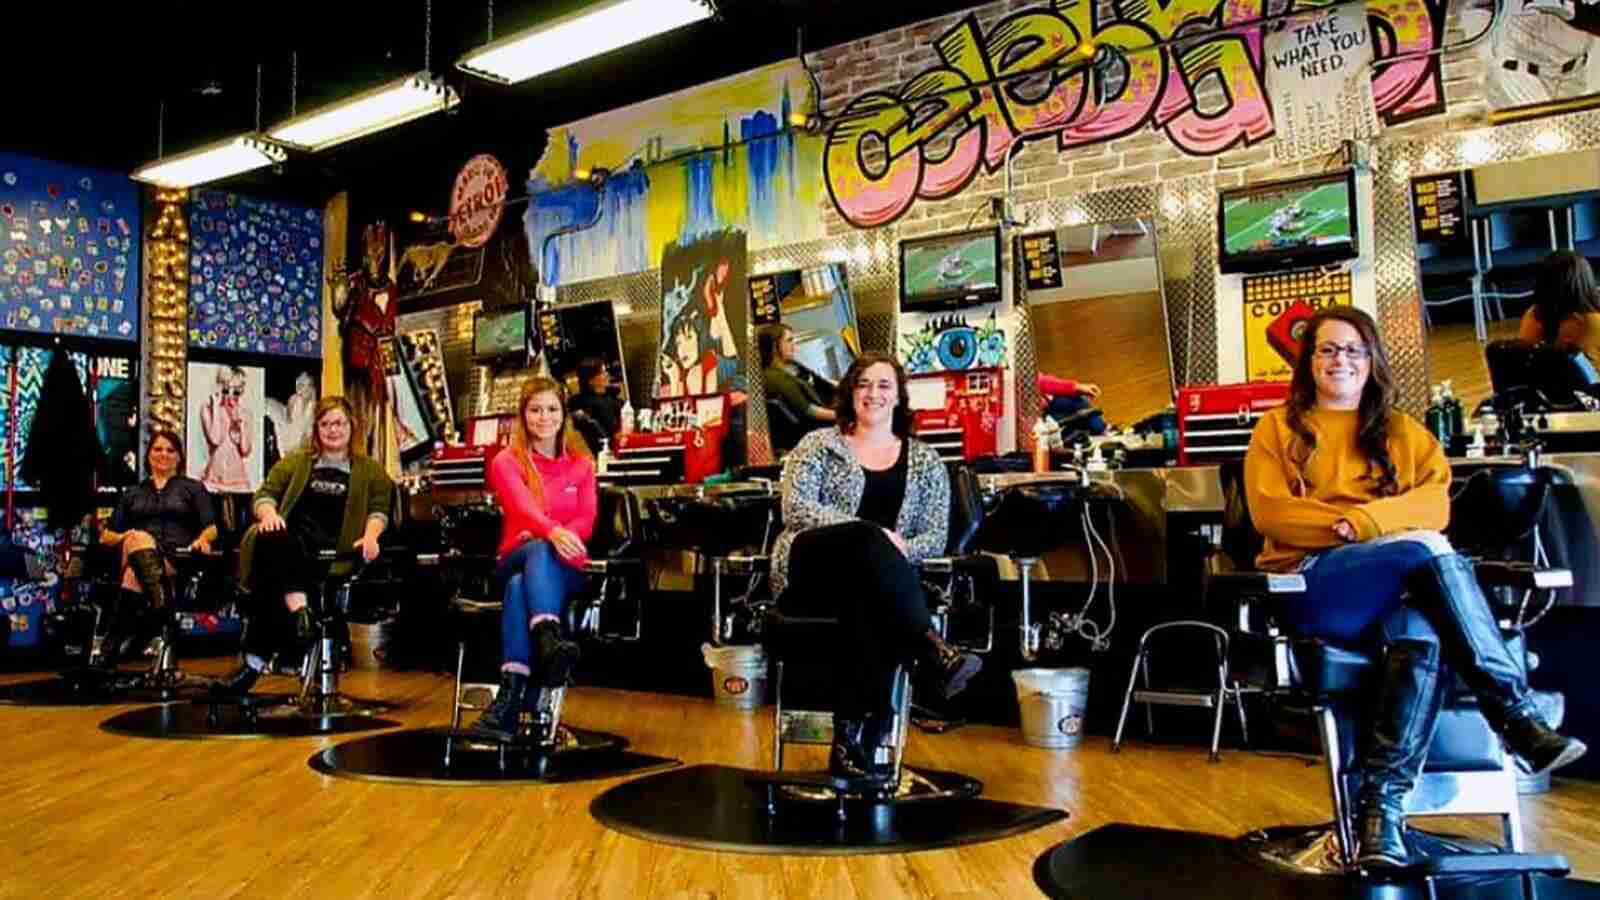 Grand-Rapids-celebration_barbers-near-me_MI_Grand-Rapids_2121-Celebration-Dr-NE_